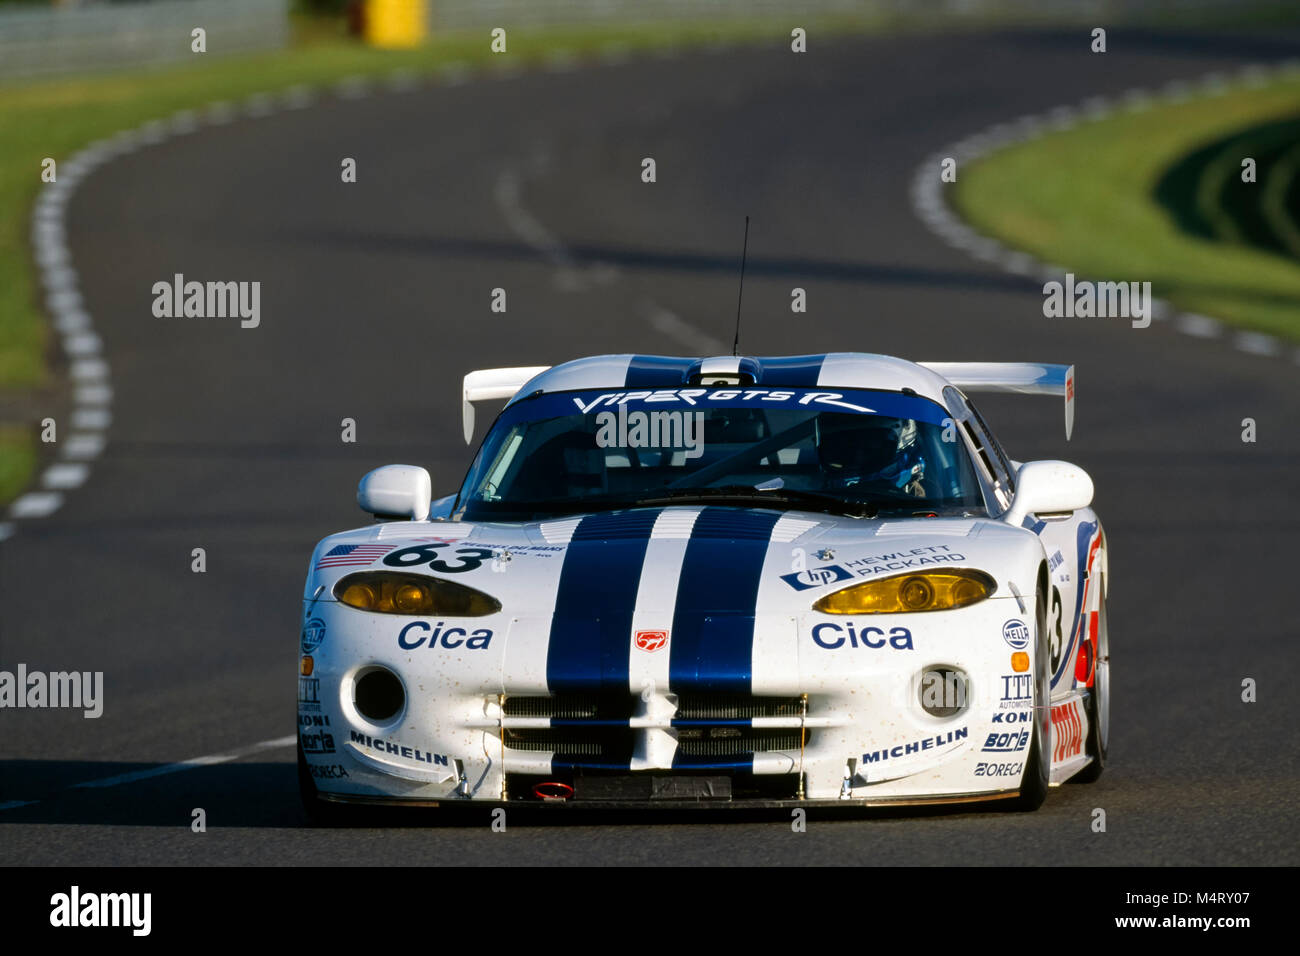 Dodge Viper 2017 Blue >> Chrysler Viper Stock Photos & Chrysler Viper Stock Images - Alamy